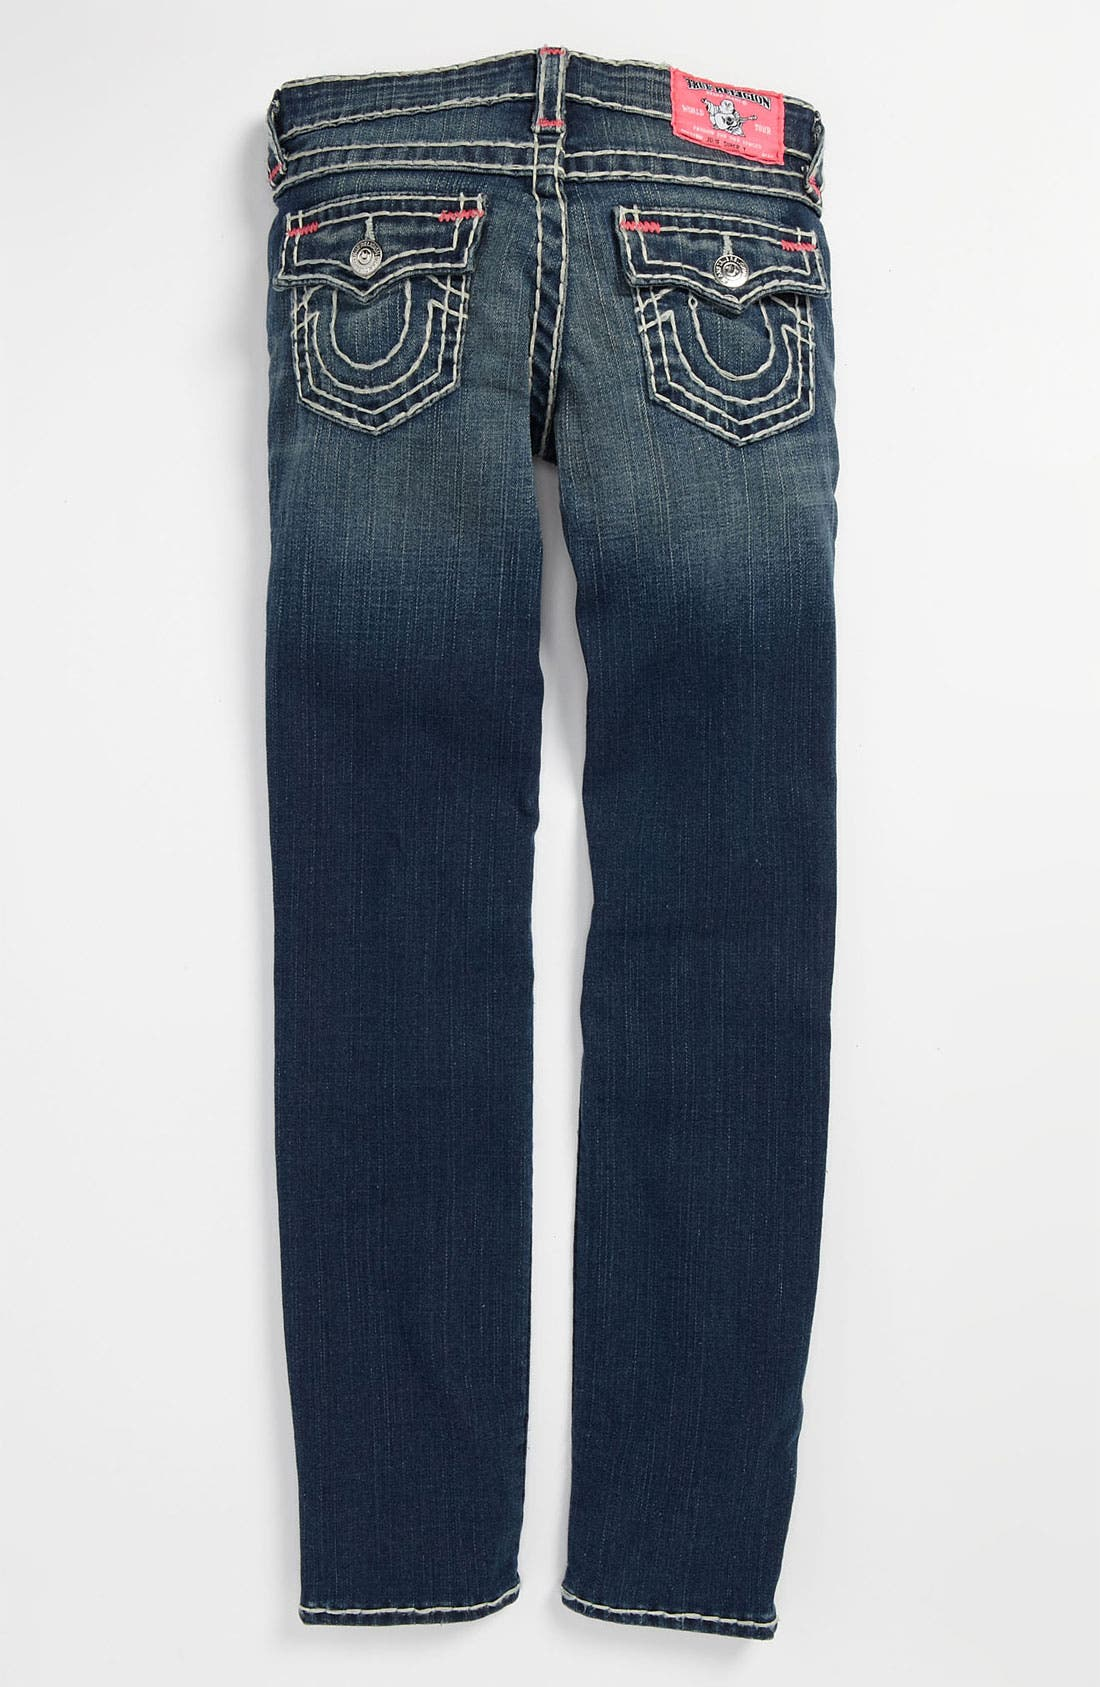 Alternate Image 1 Selected - True Religion Brand Jeans 'Bartack - Super T' Straight Leg Jeans (Little Girls & Big Girls)